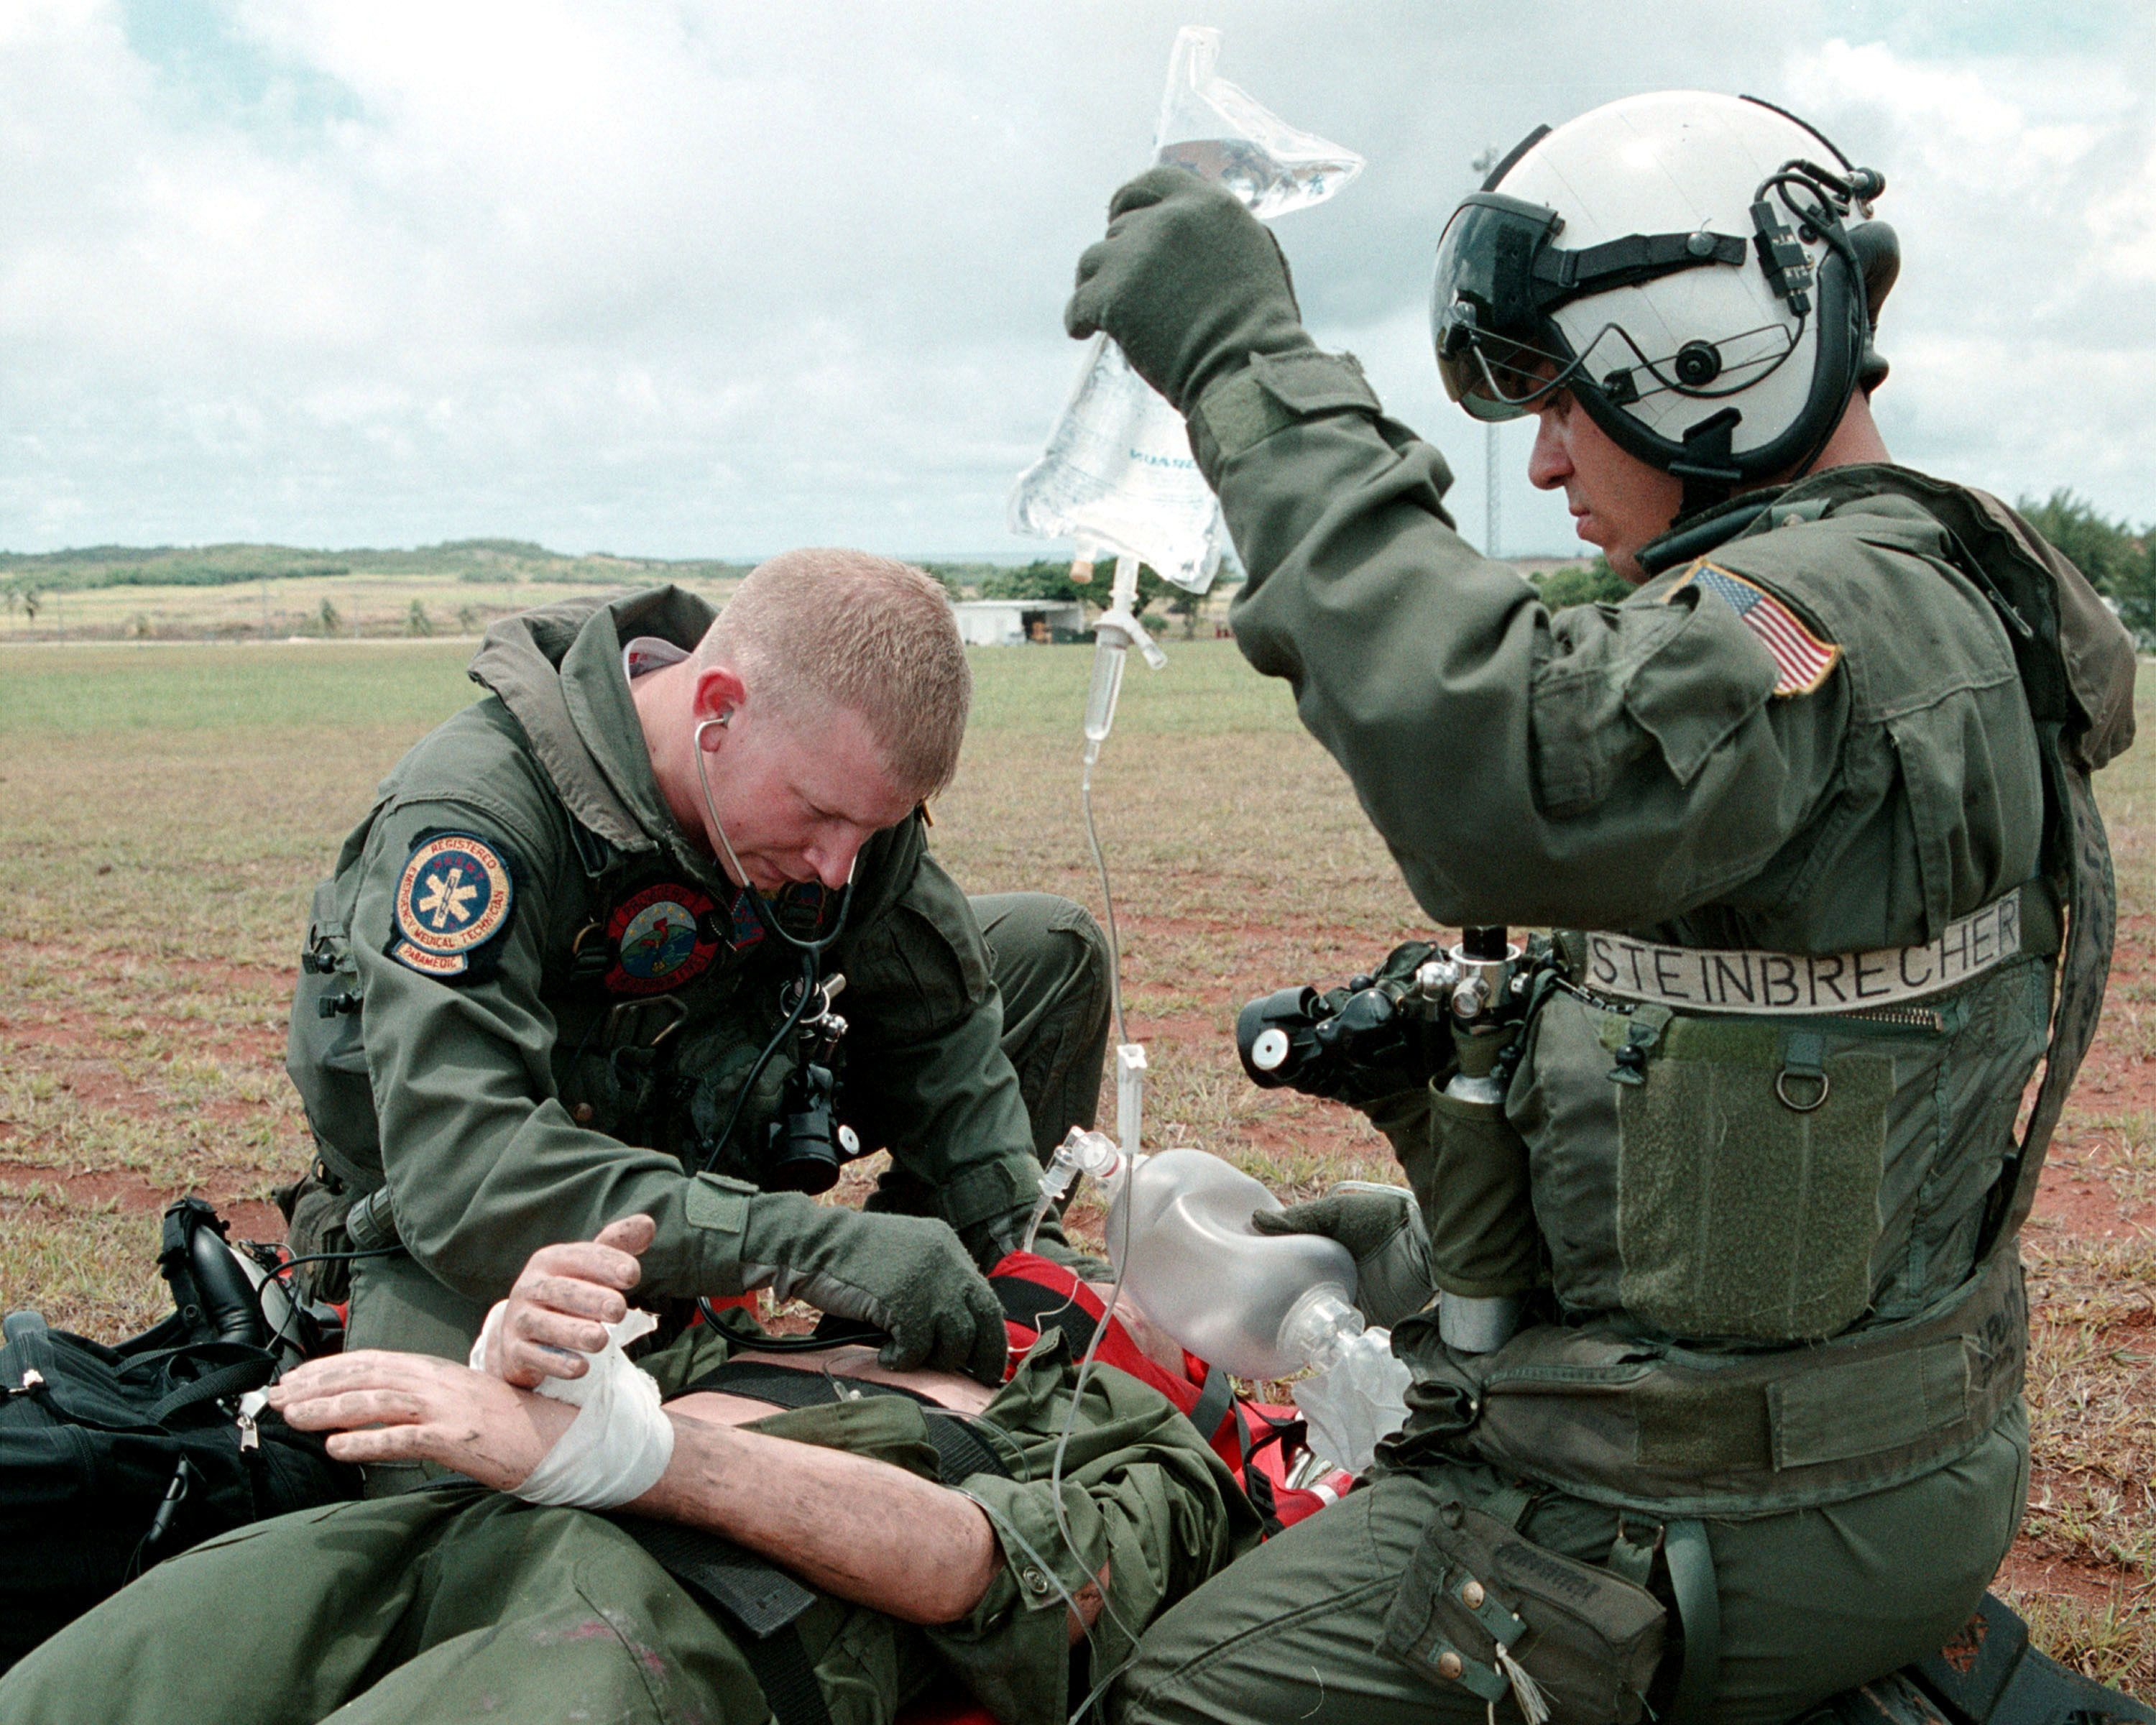 US Navy Corpsman Field Training Exercise | Law Enforcement ...